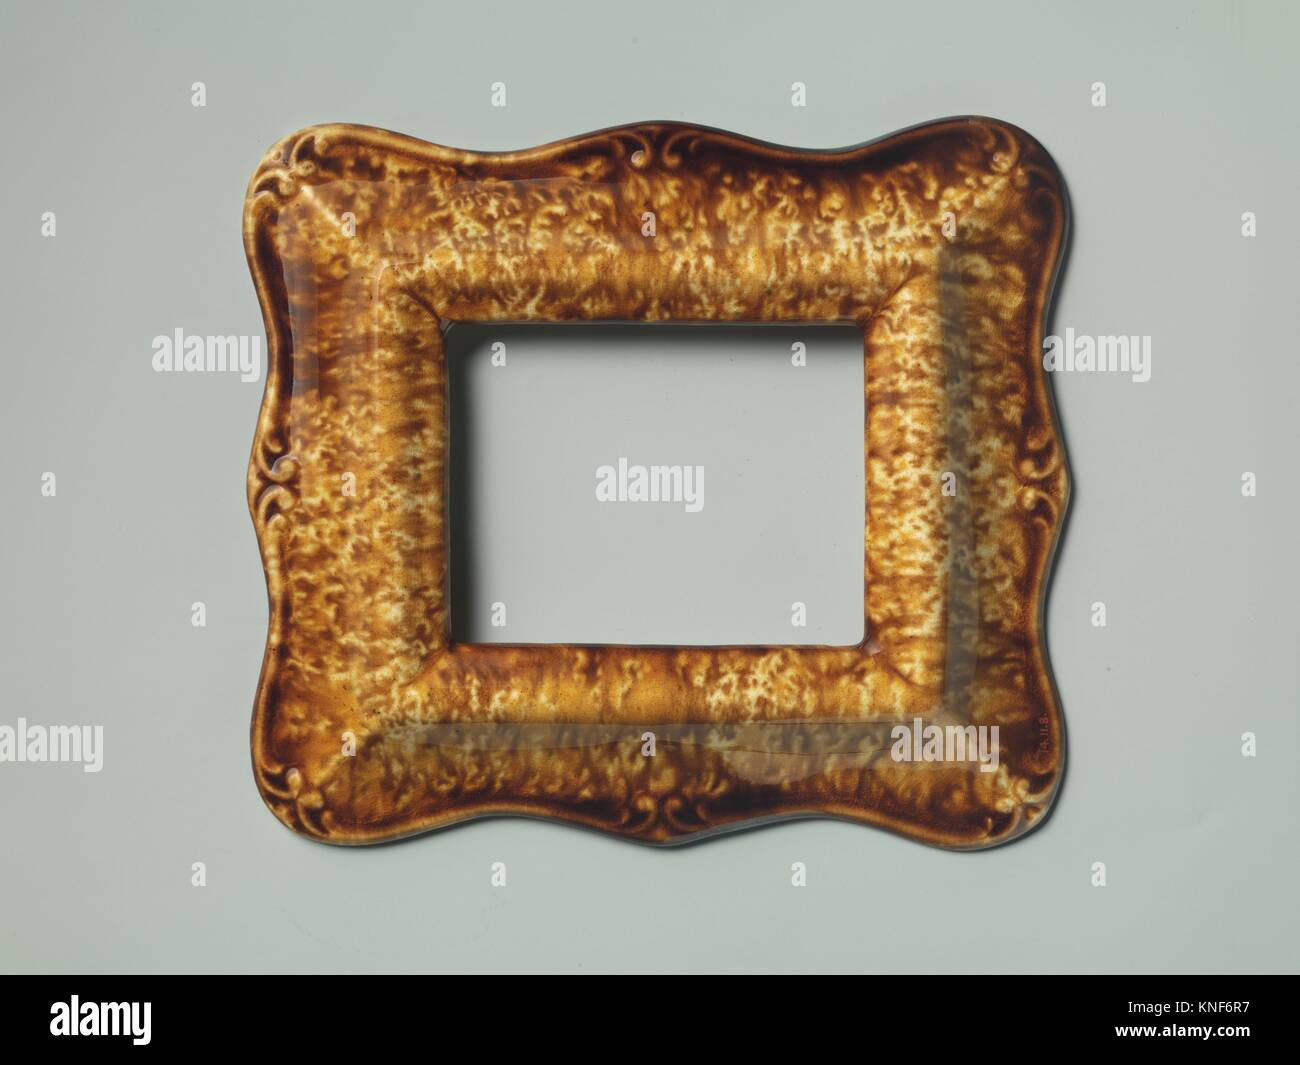 Frame Maker Stock Photos & Frame Maker Stock Images - Alamy